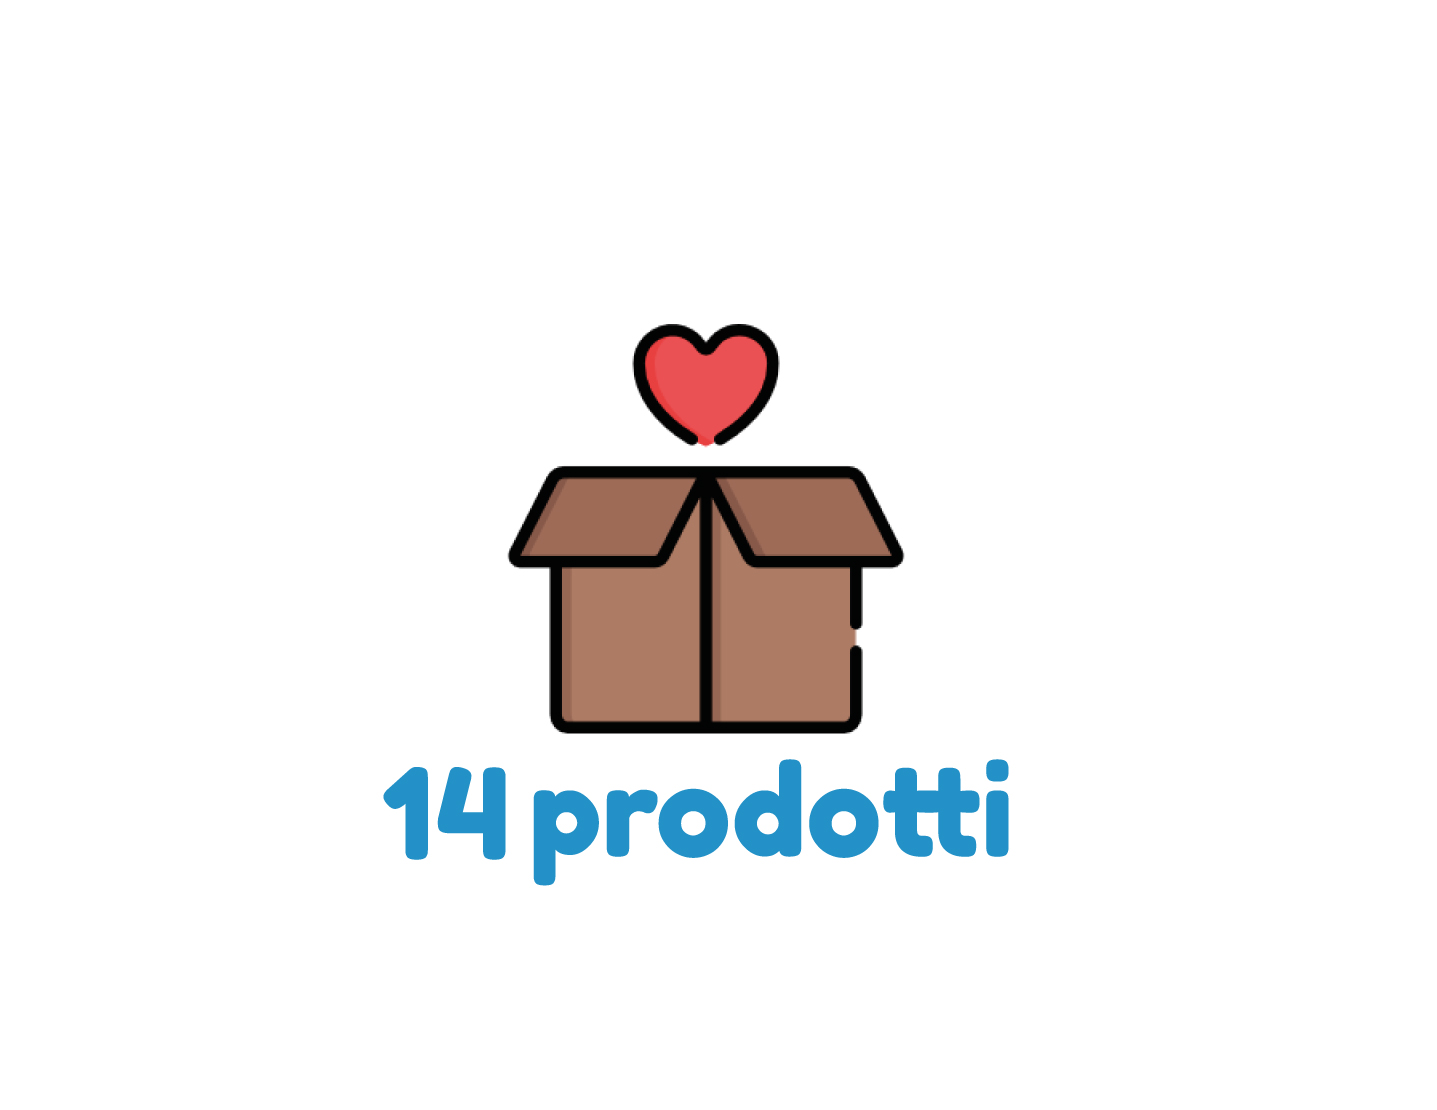 Food Box 14 Prodotti